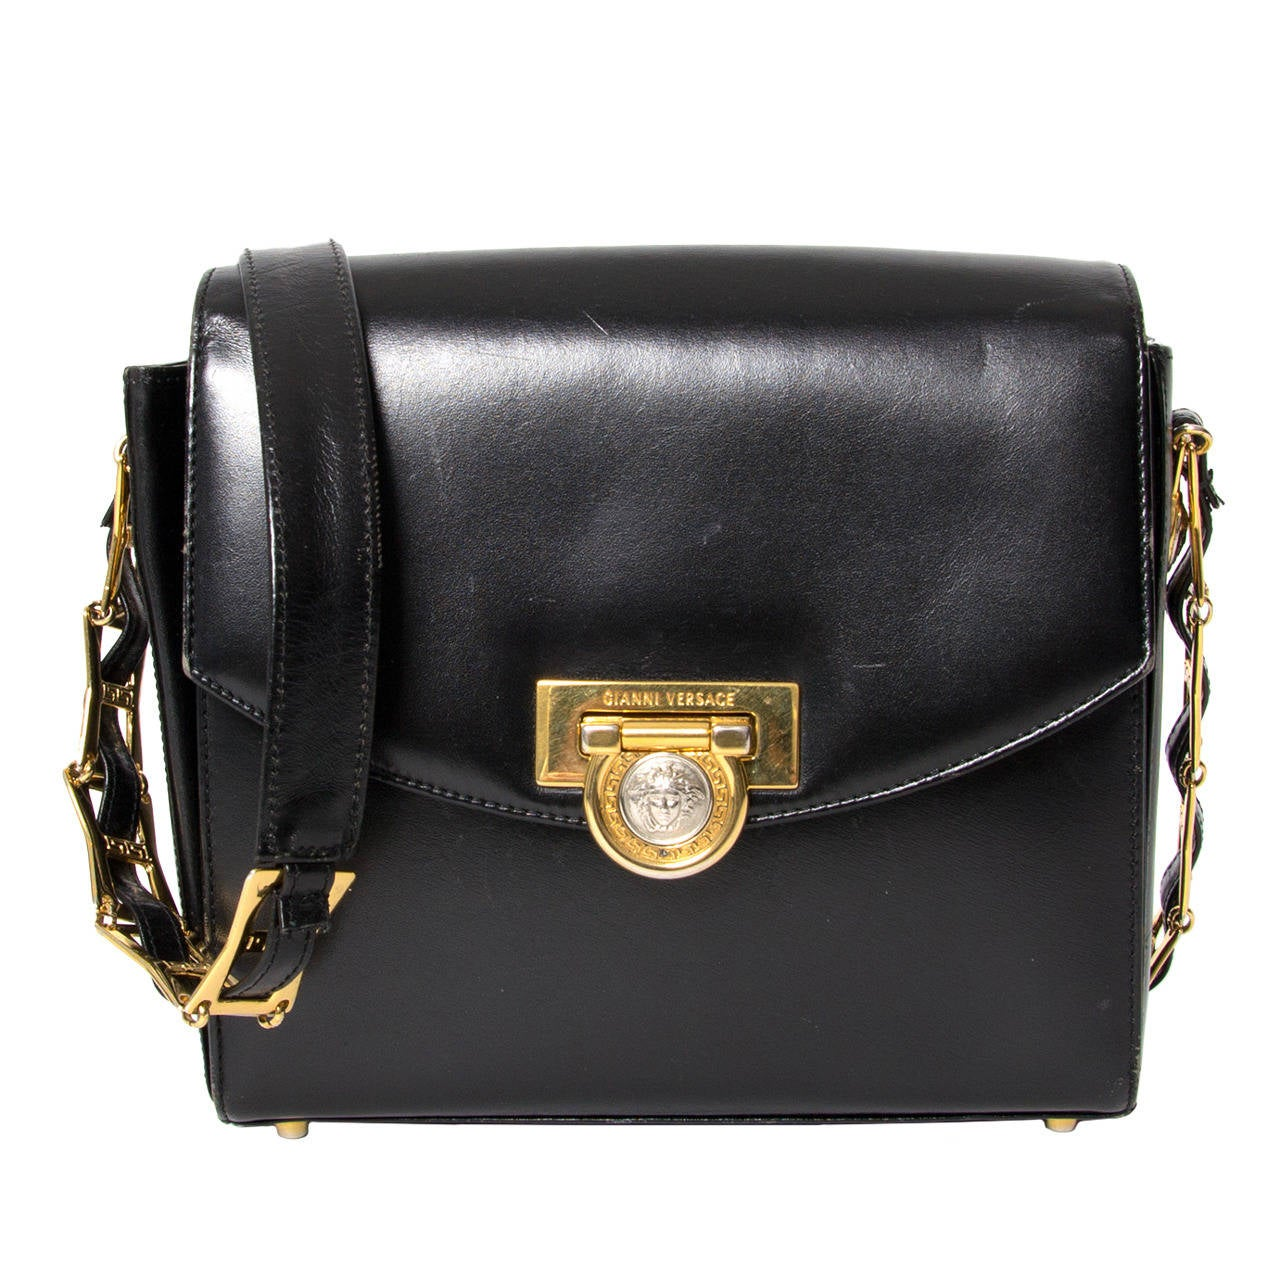 Gianni Versace Black Leather Medusa Handbag For Sale